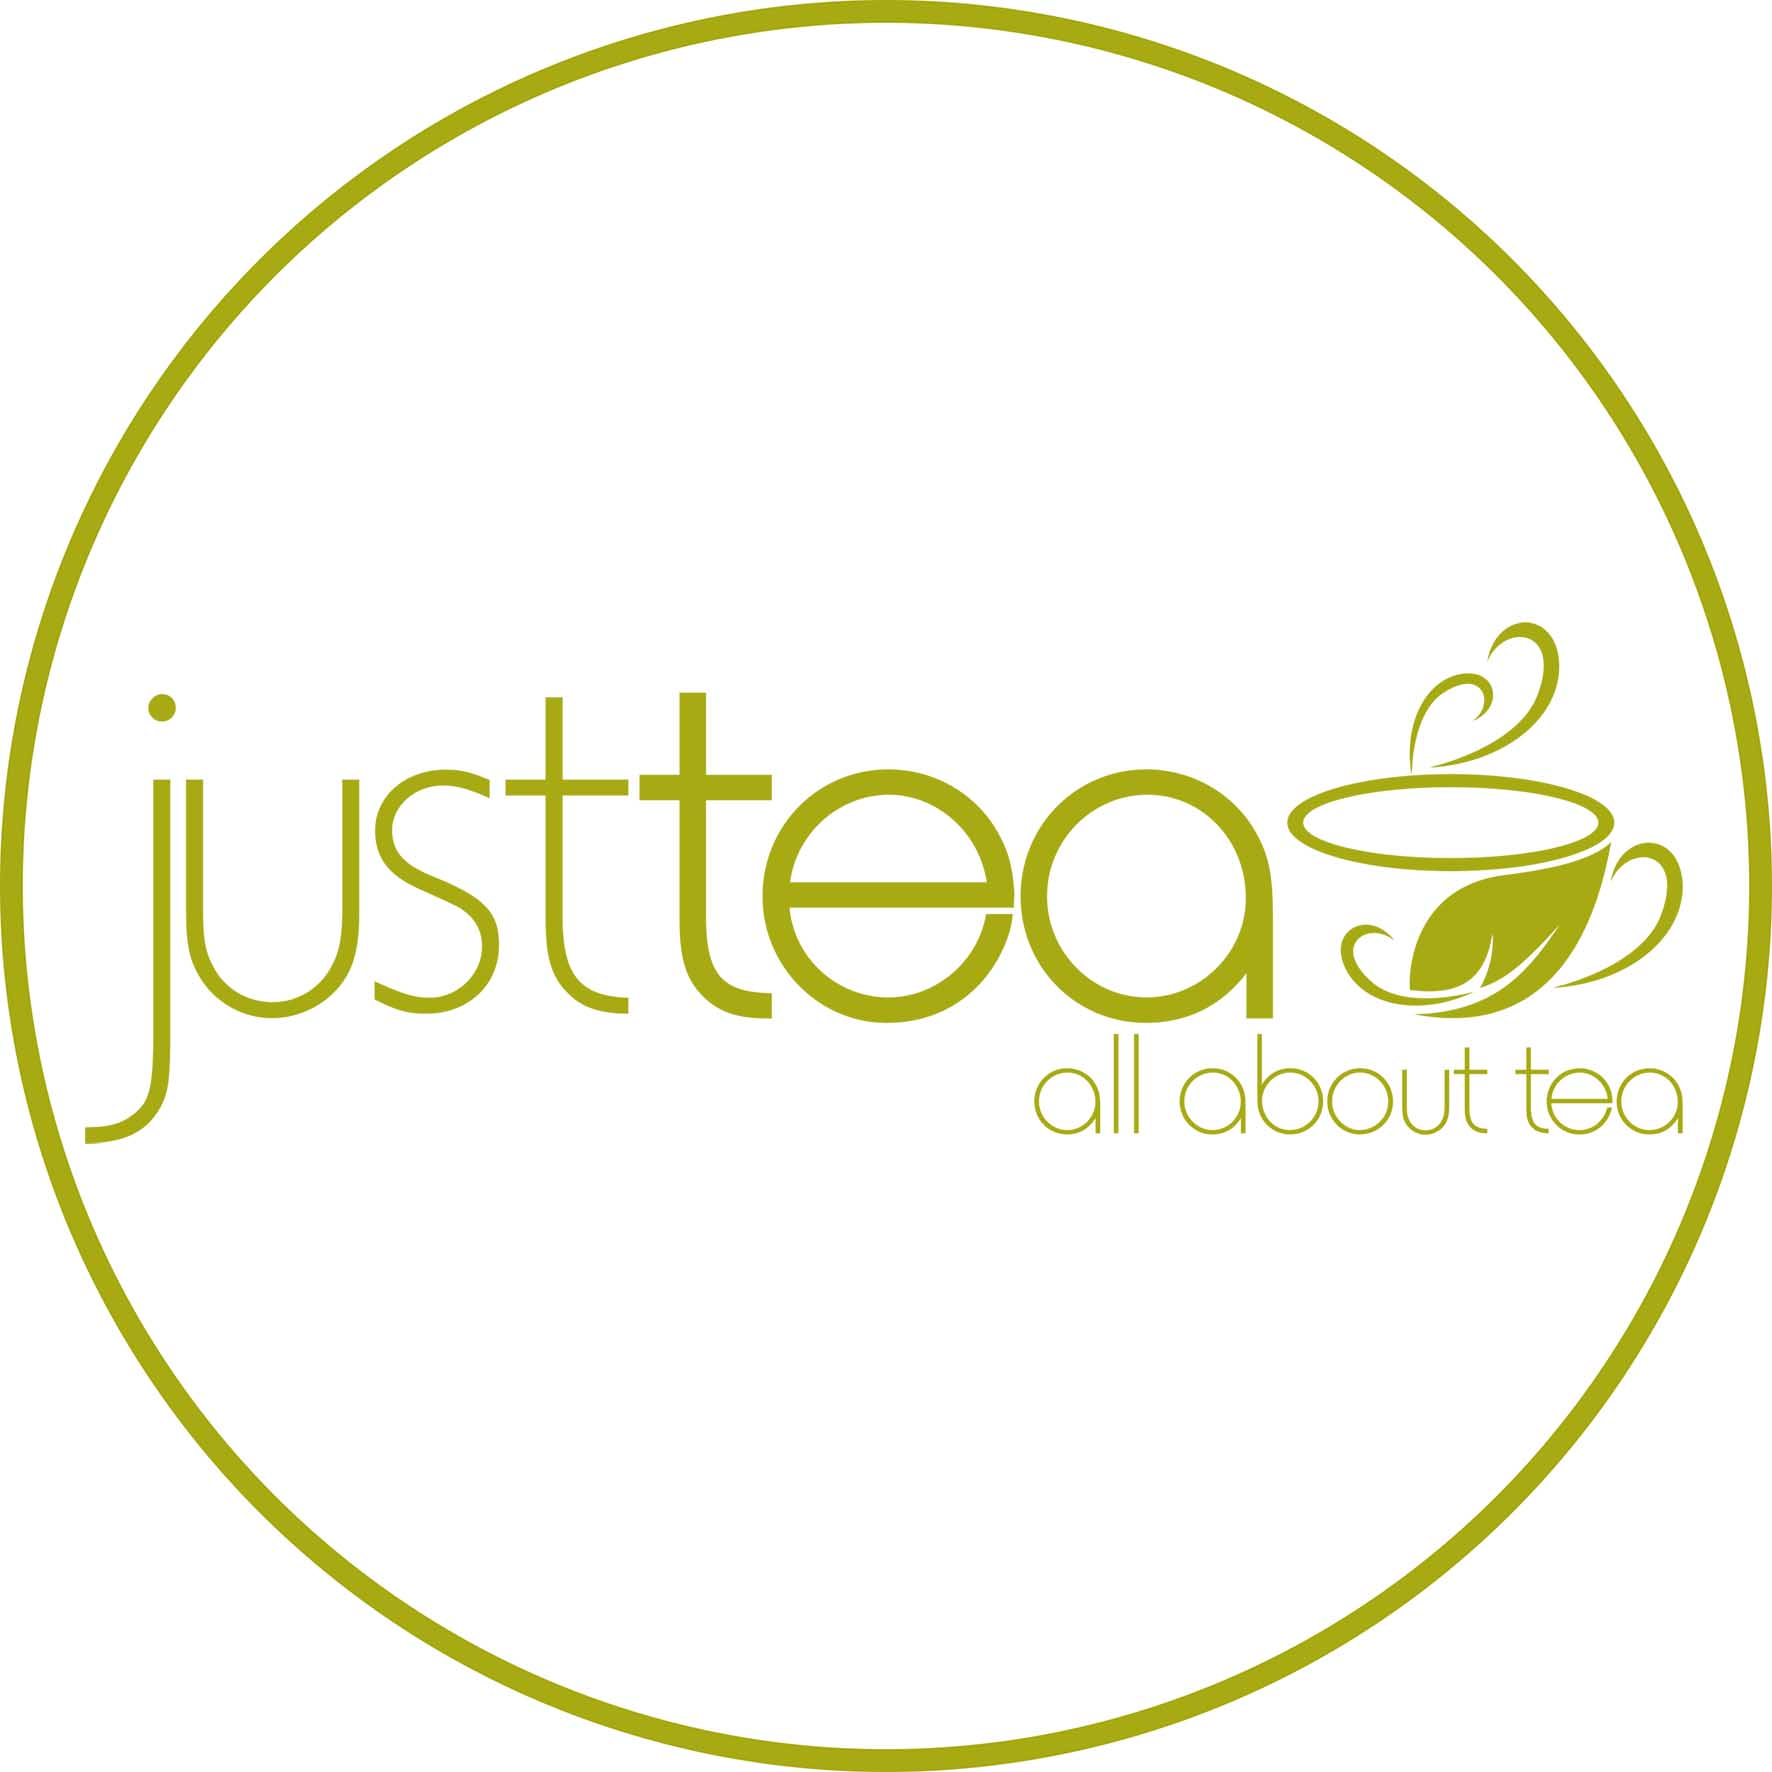 logo_just_tea_saco